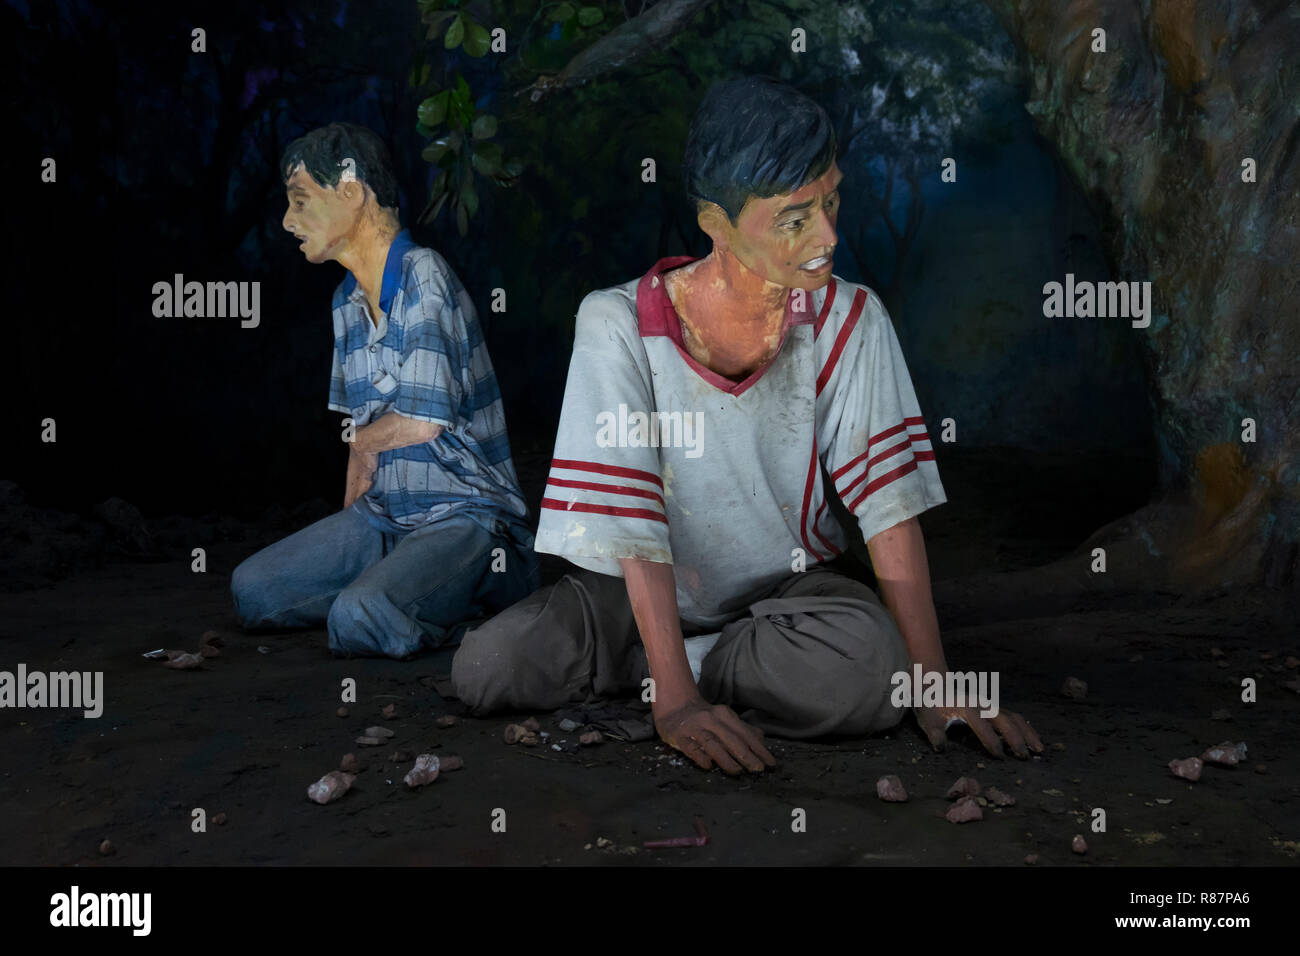 Diorama showing what drug addiction looks like at the Drug Elimination Museum in Yangon, Myanmar. Stock Photo